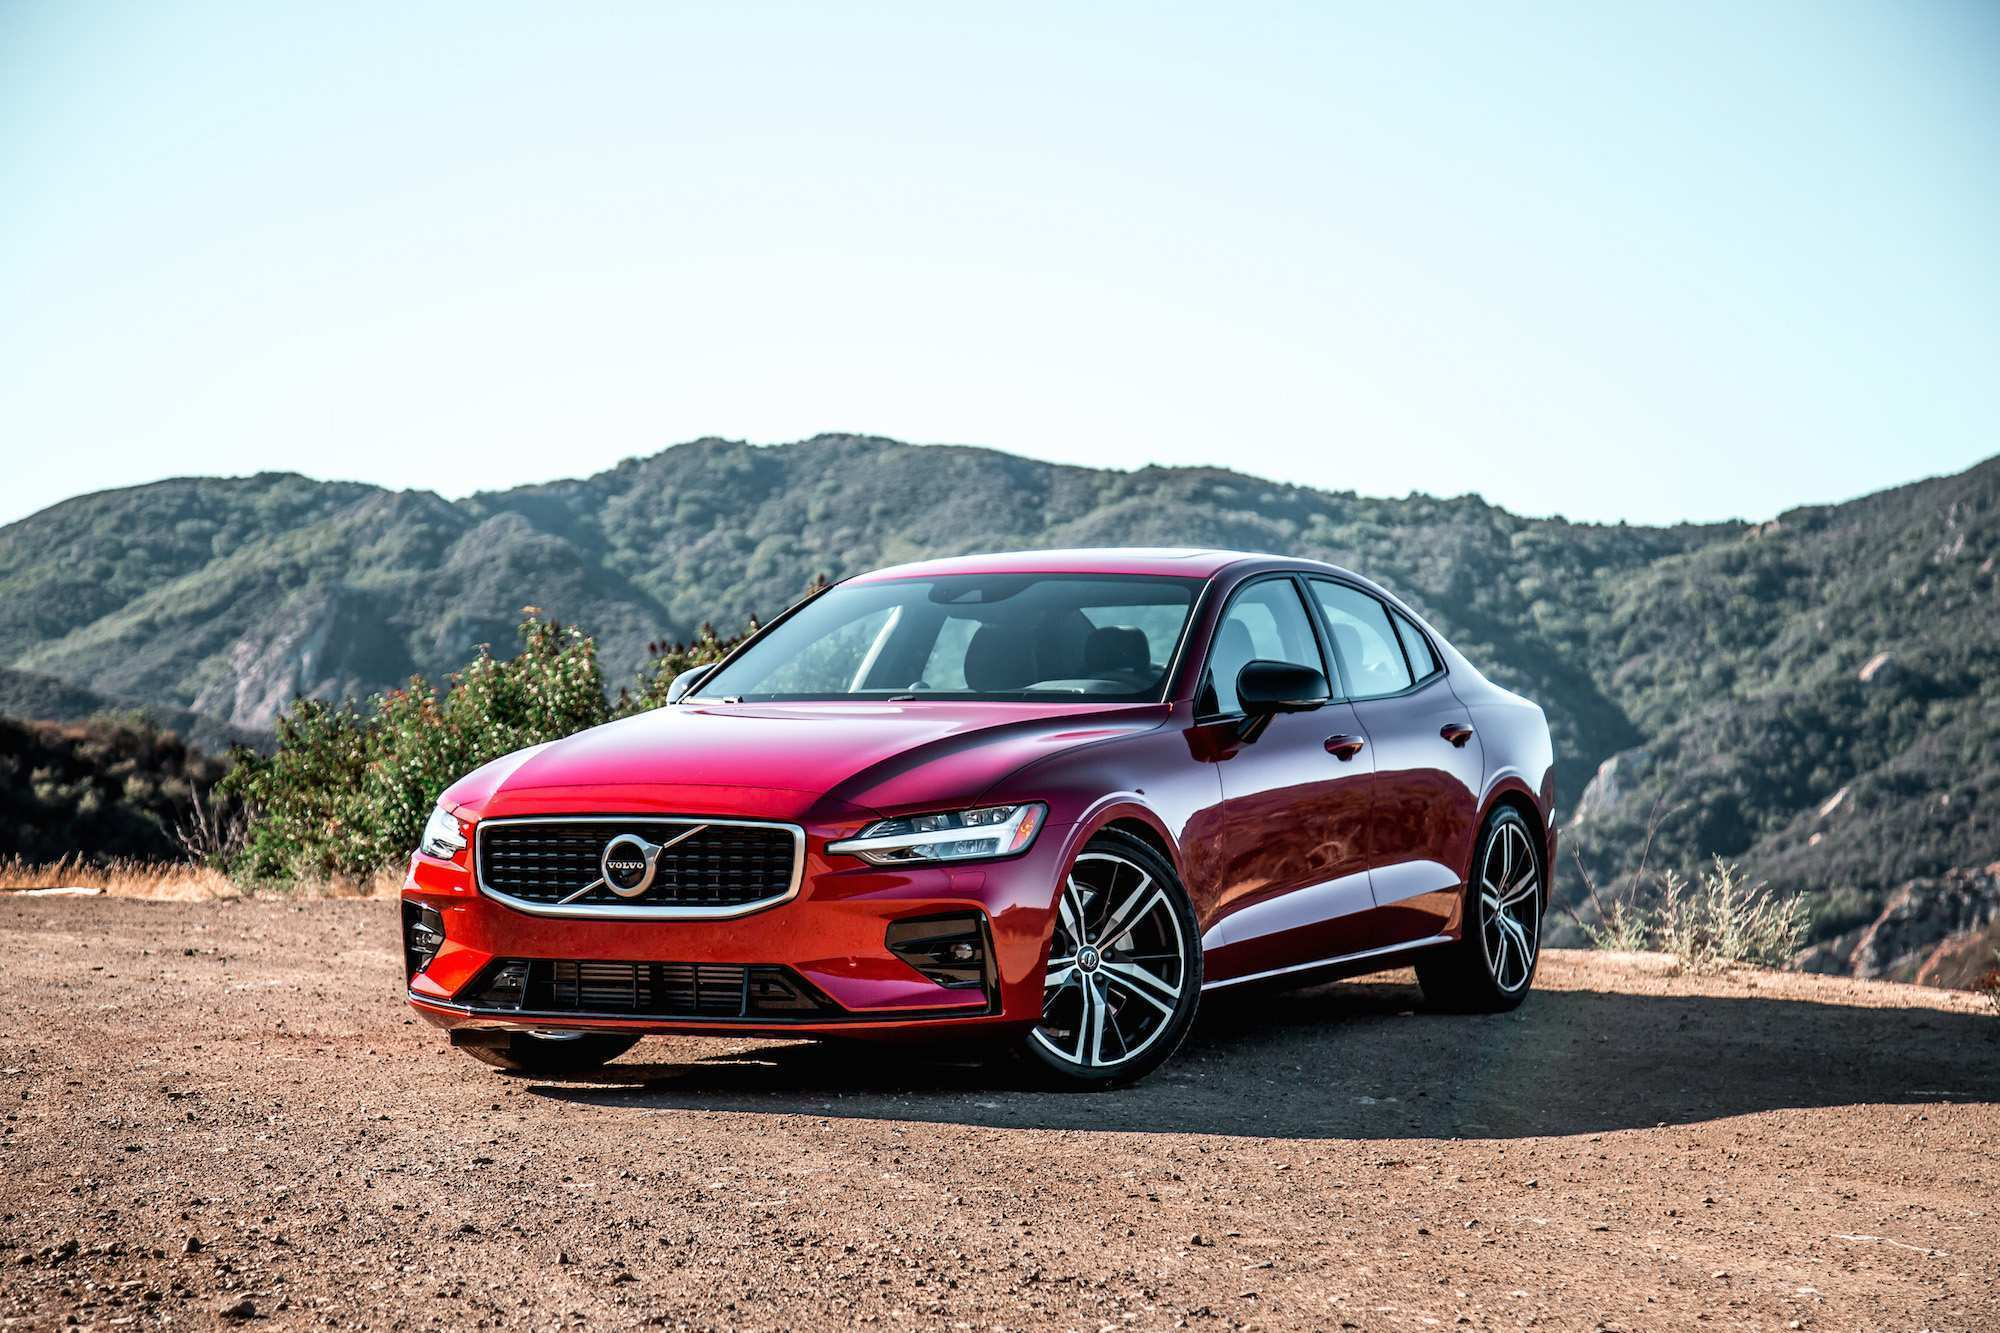 85 Great 2020 Volvo S60 Pictures with 2020 Volvo S60